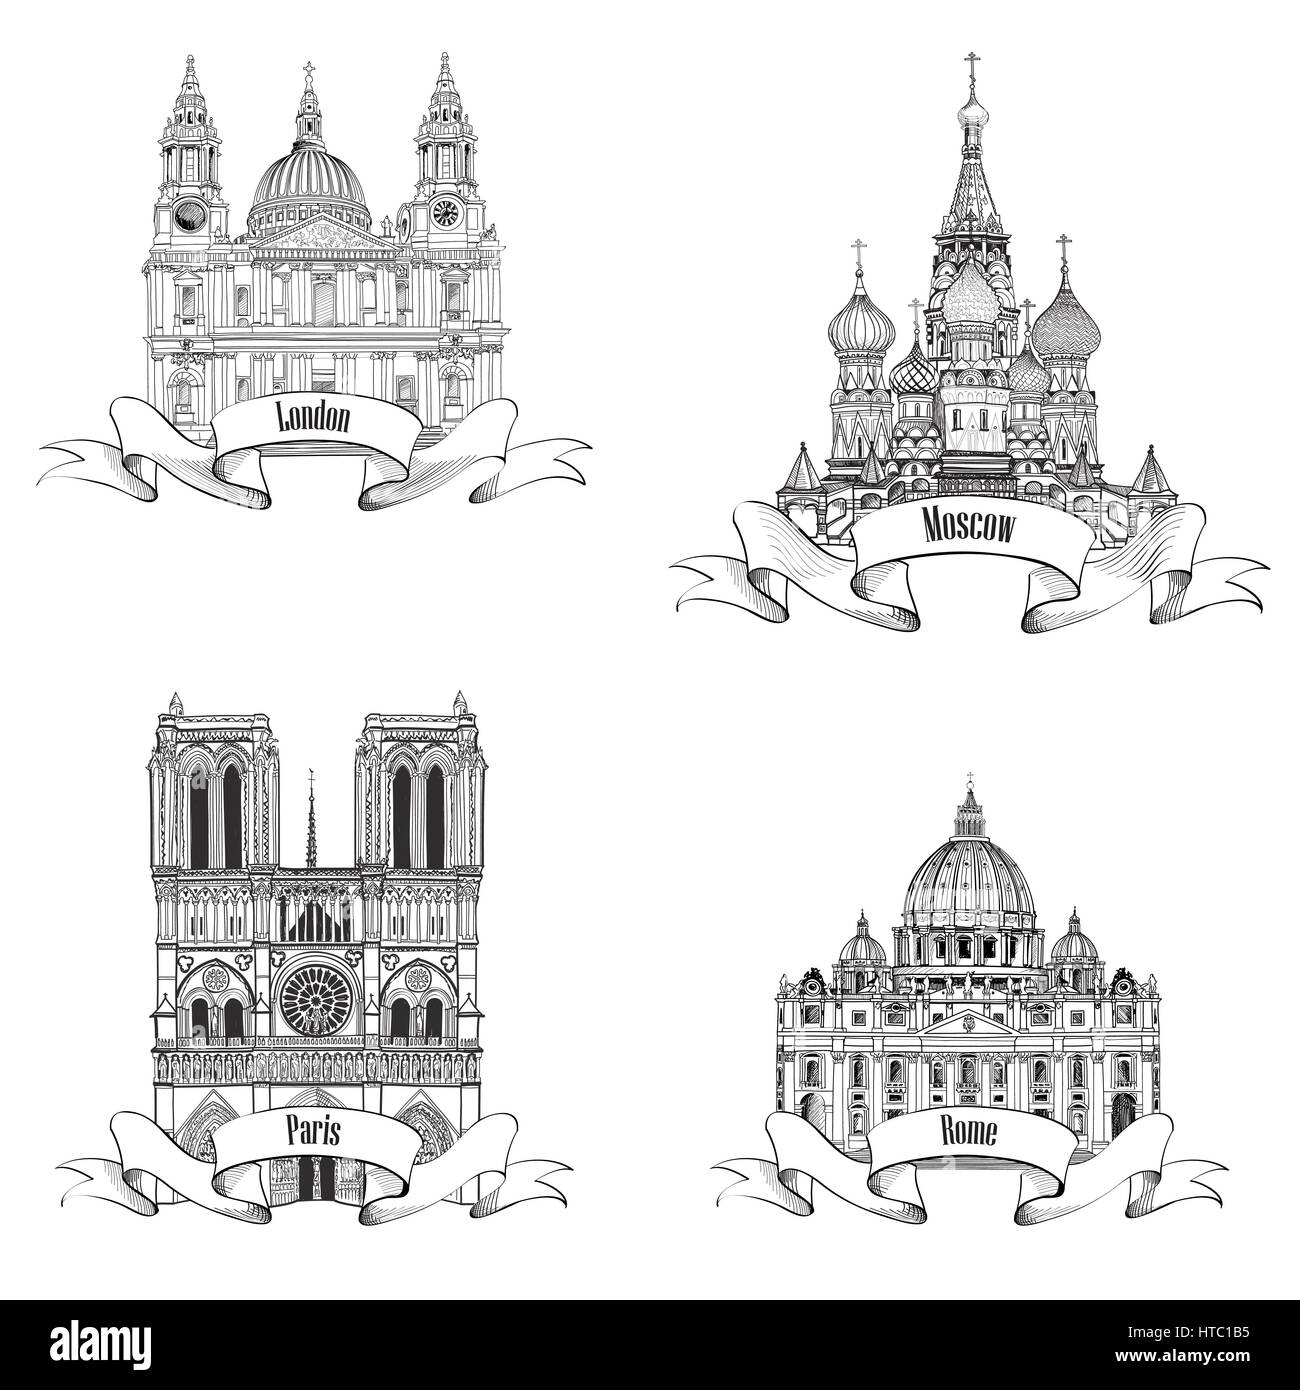 Travel europe vector set famous european landmarks collection city travel europe vector set famous european landmarks collection city symbols paris notre dame cathedral london st paul cathedral rome st pete biocorpaavc Choice Image